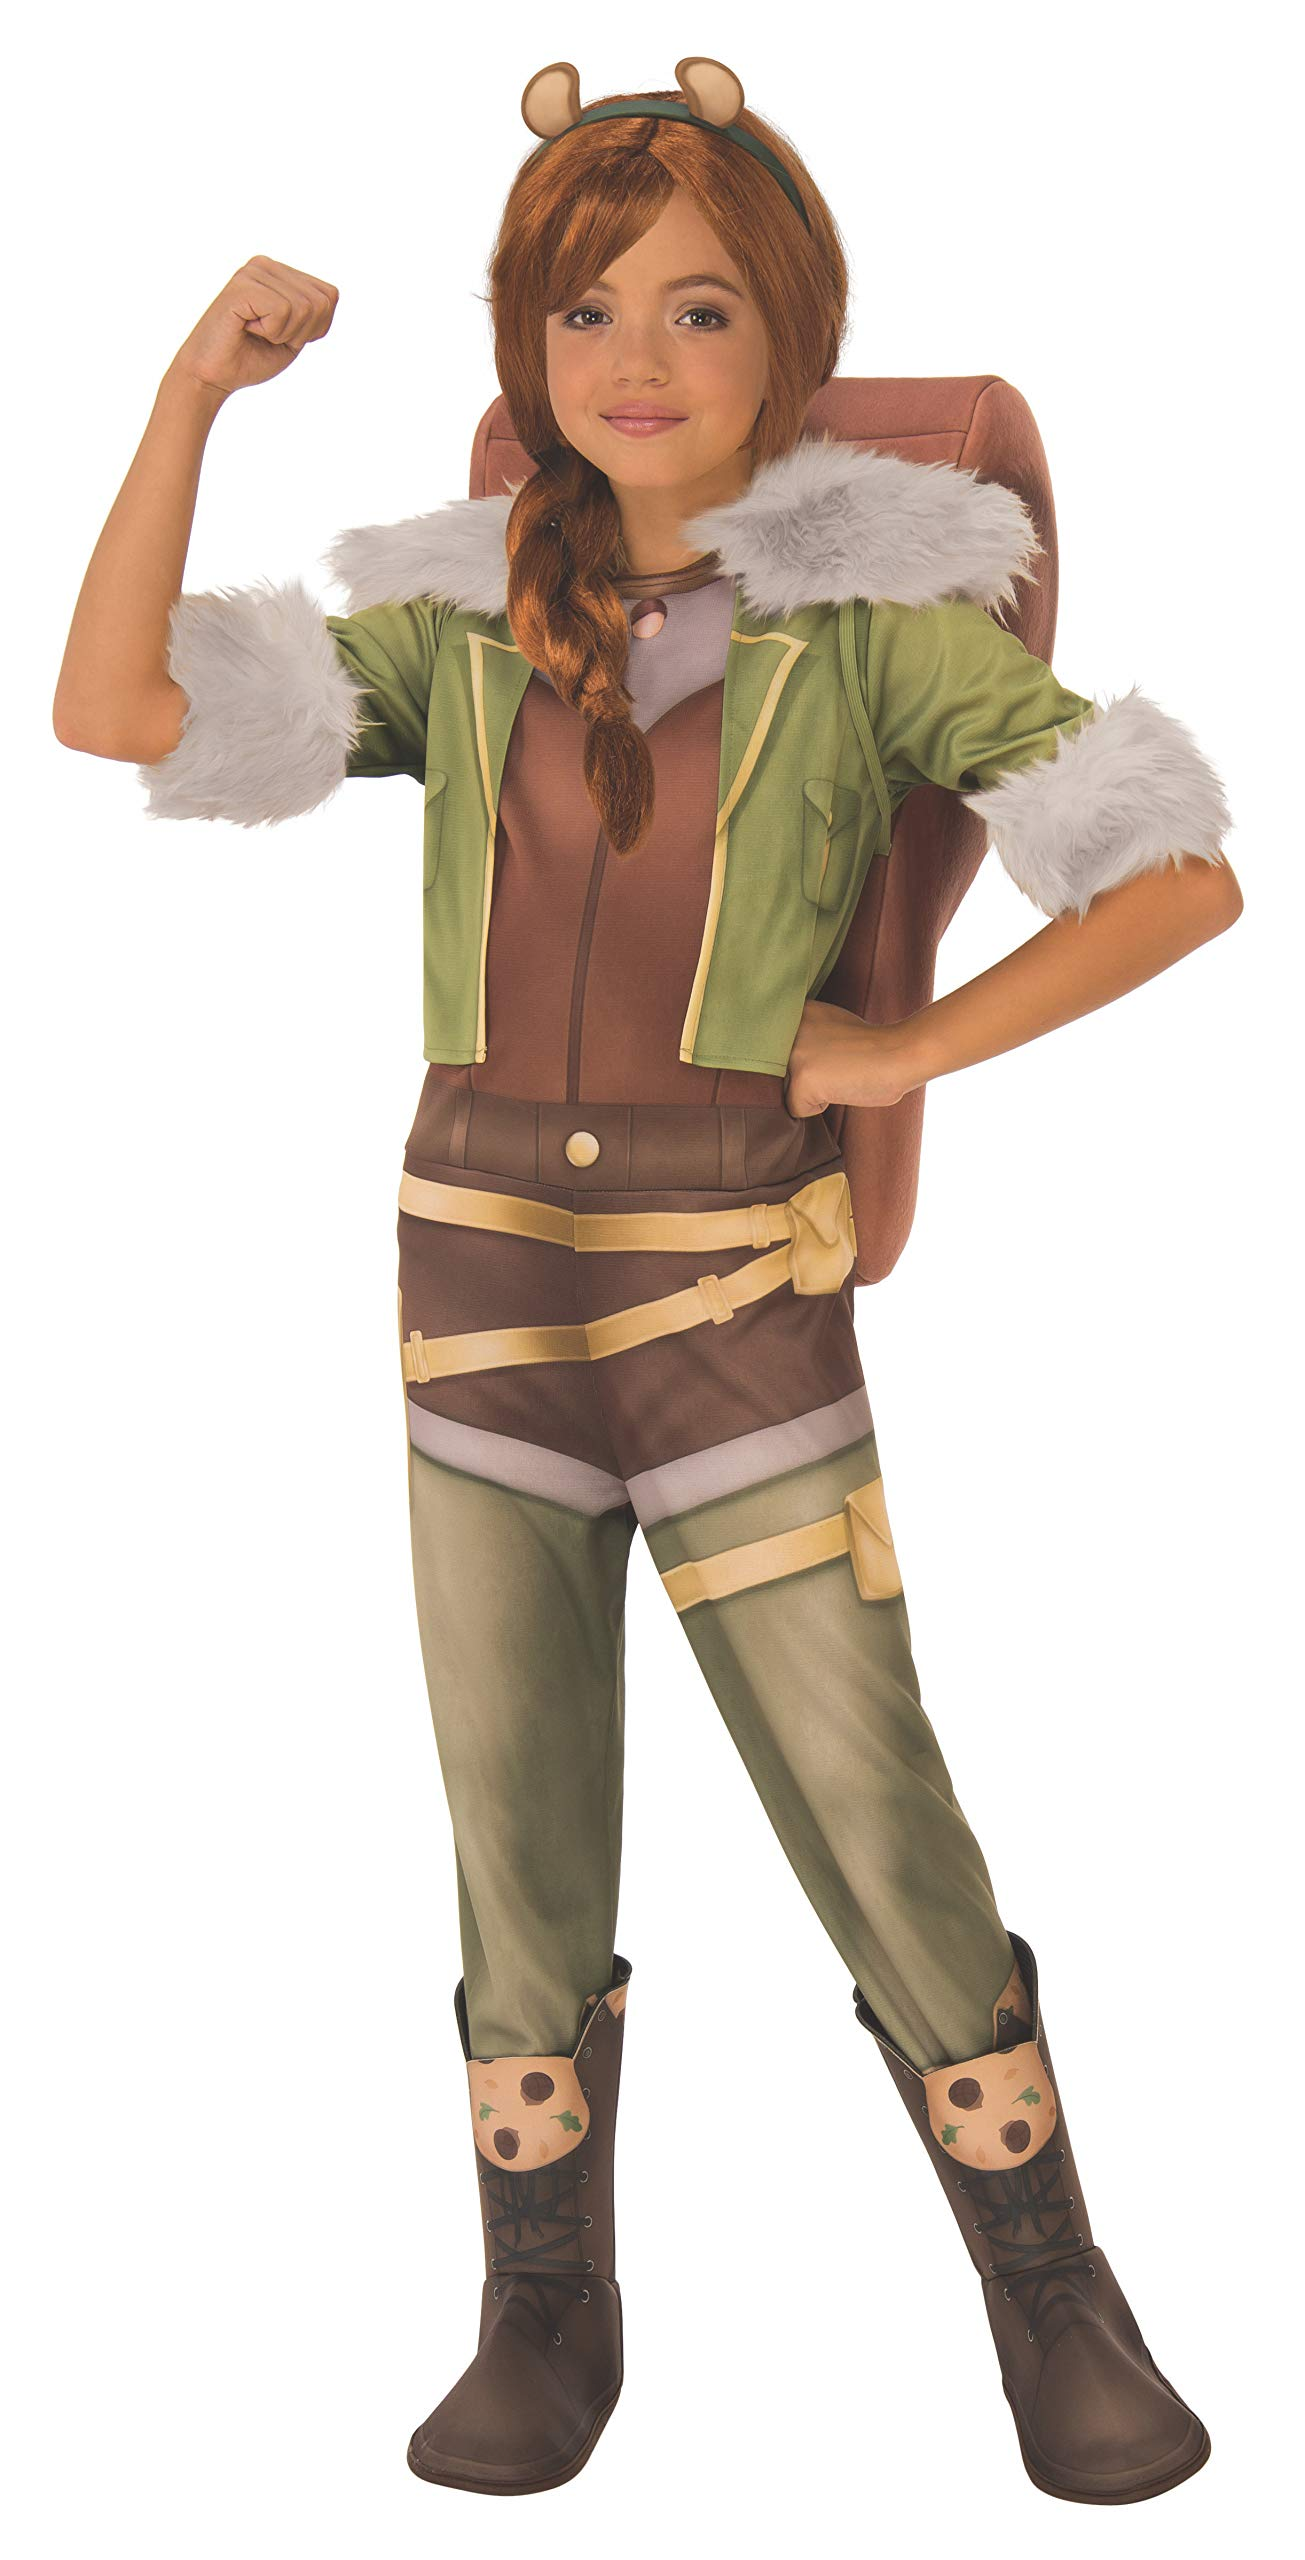 - 71P 2BGuZc7aL - Marvel Rising: Secret Warriors Deluxe Squirrel Girl Costume, Small